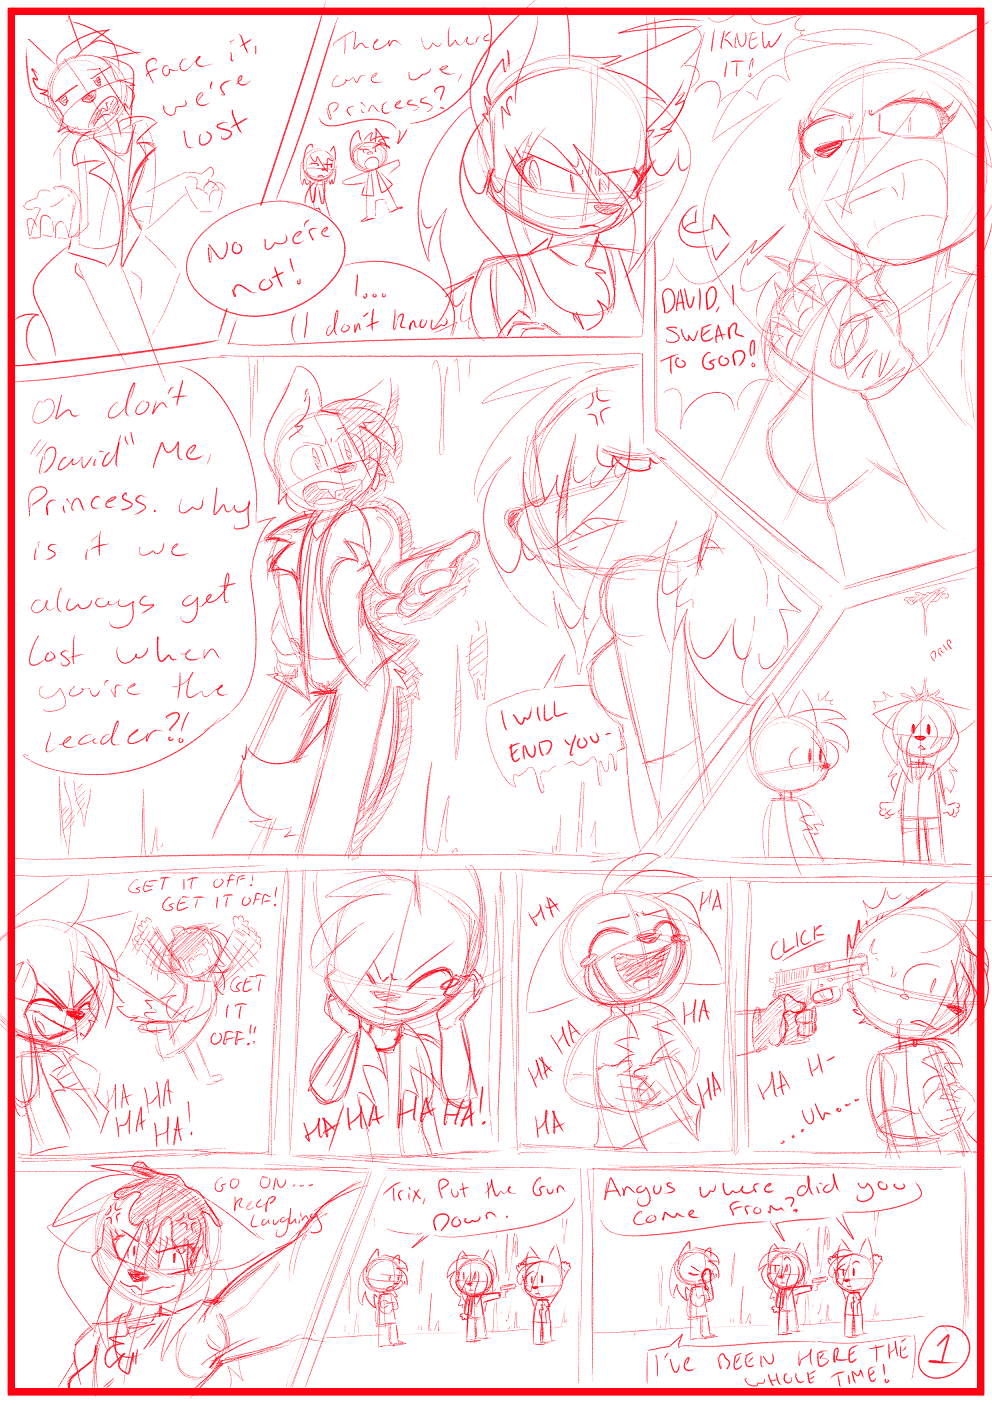 CBG Comic remastered 2021 sketch super smaller.png